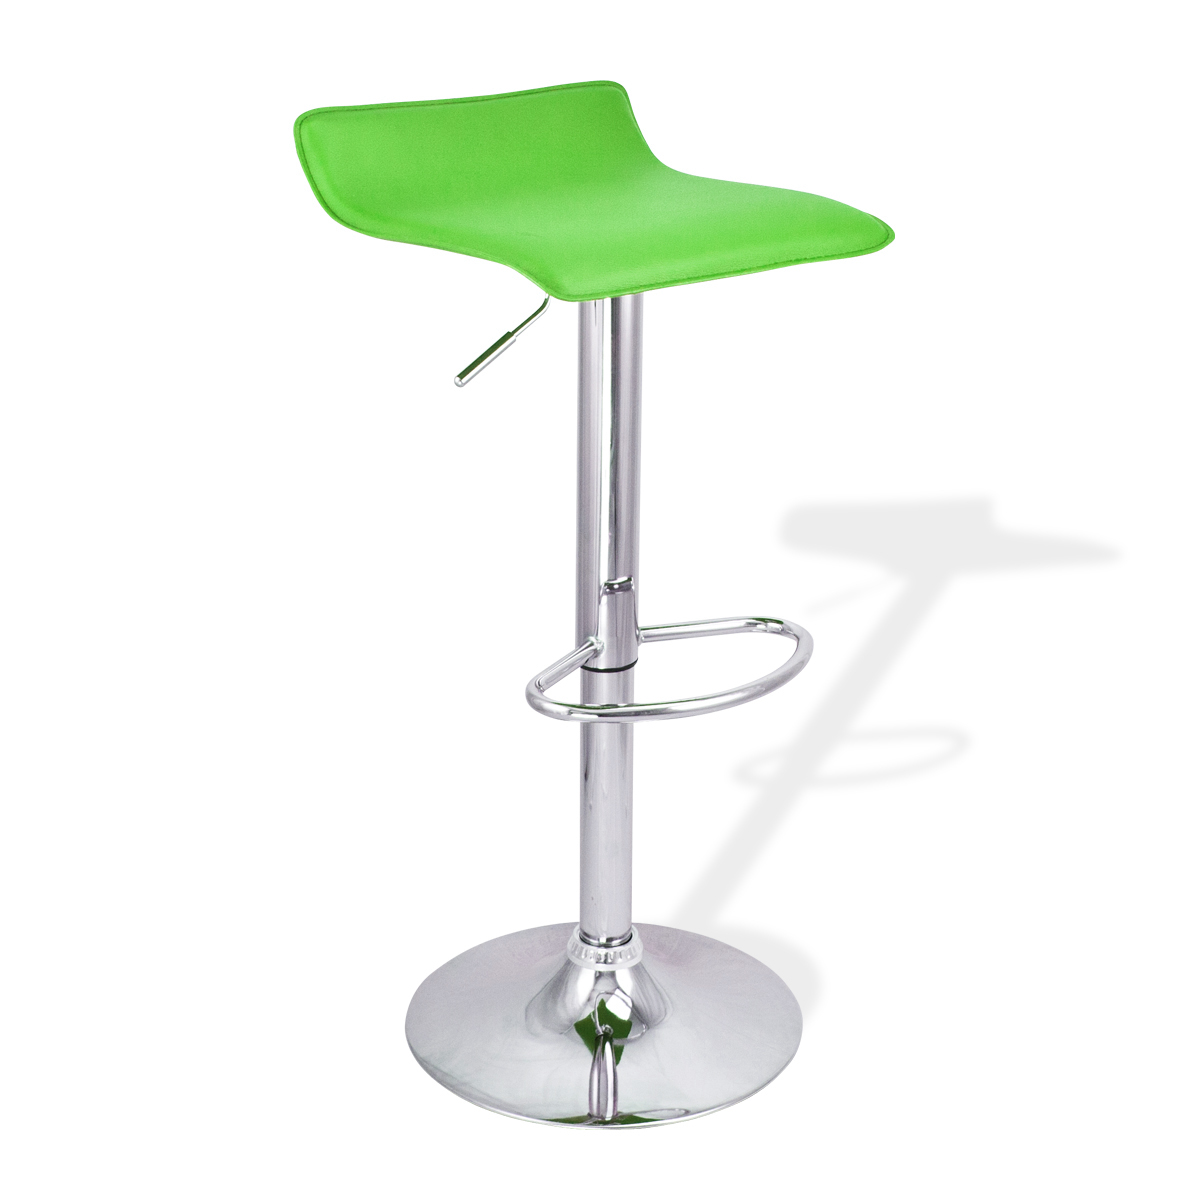 4 New Modern Bar Stool Green Swivel Bombo Chair Pub